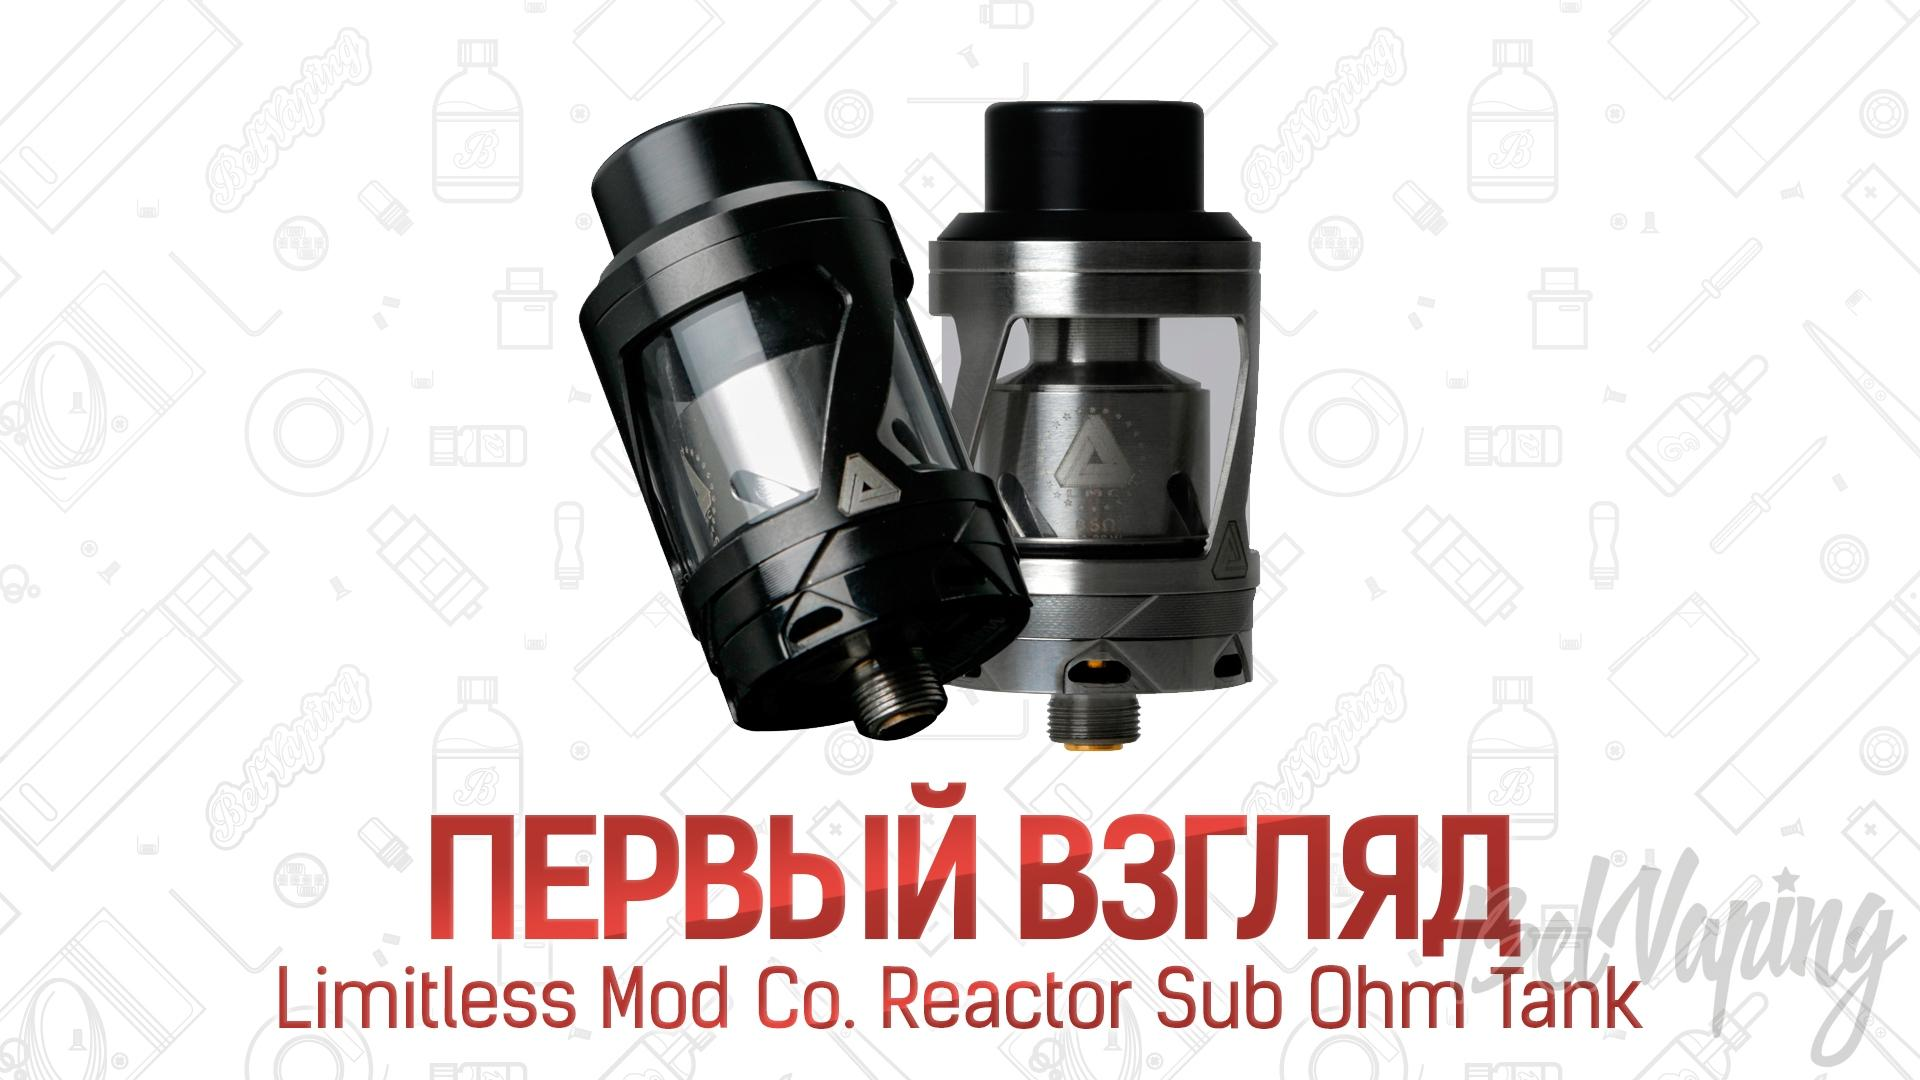 Limitless Mod Co. Reactor Sub Ohm Tank. Первый взгляд